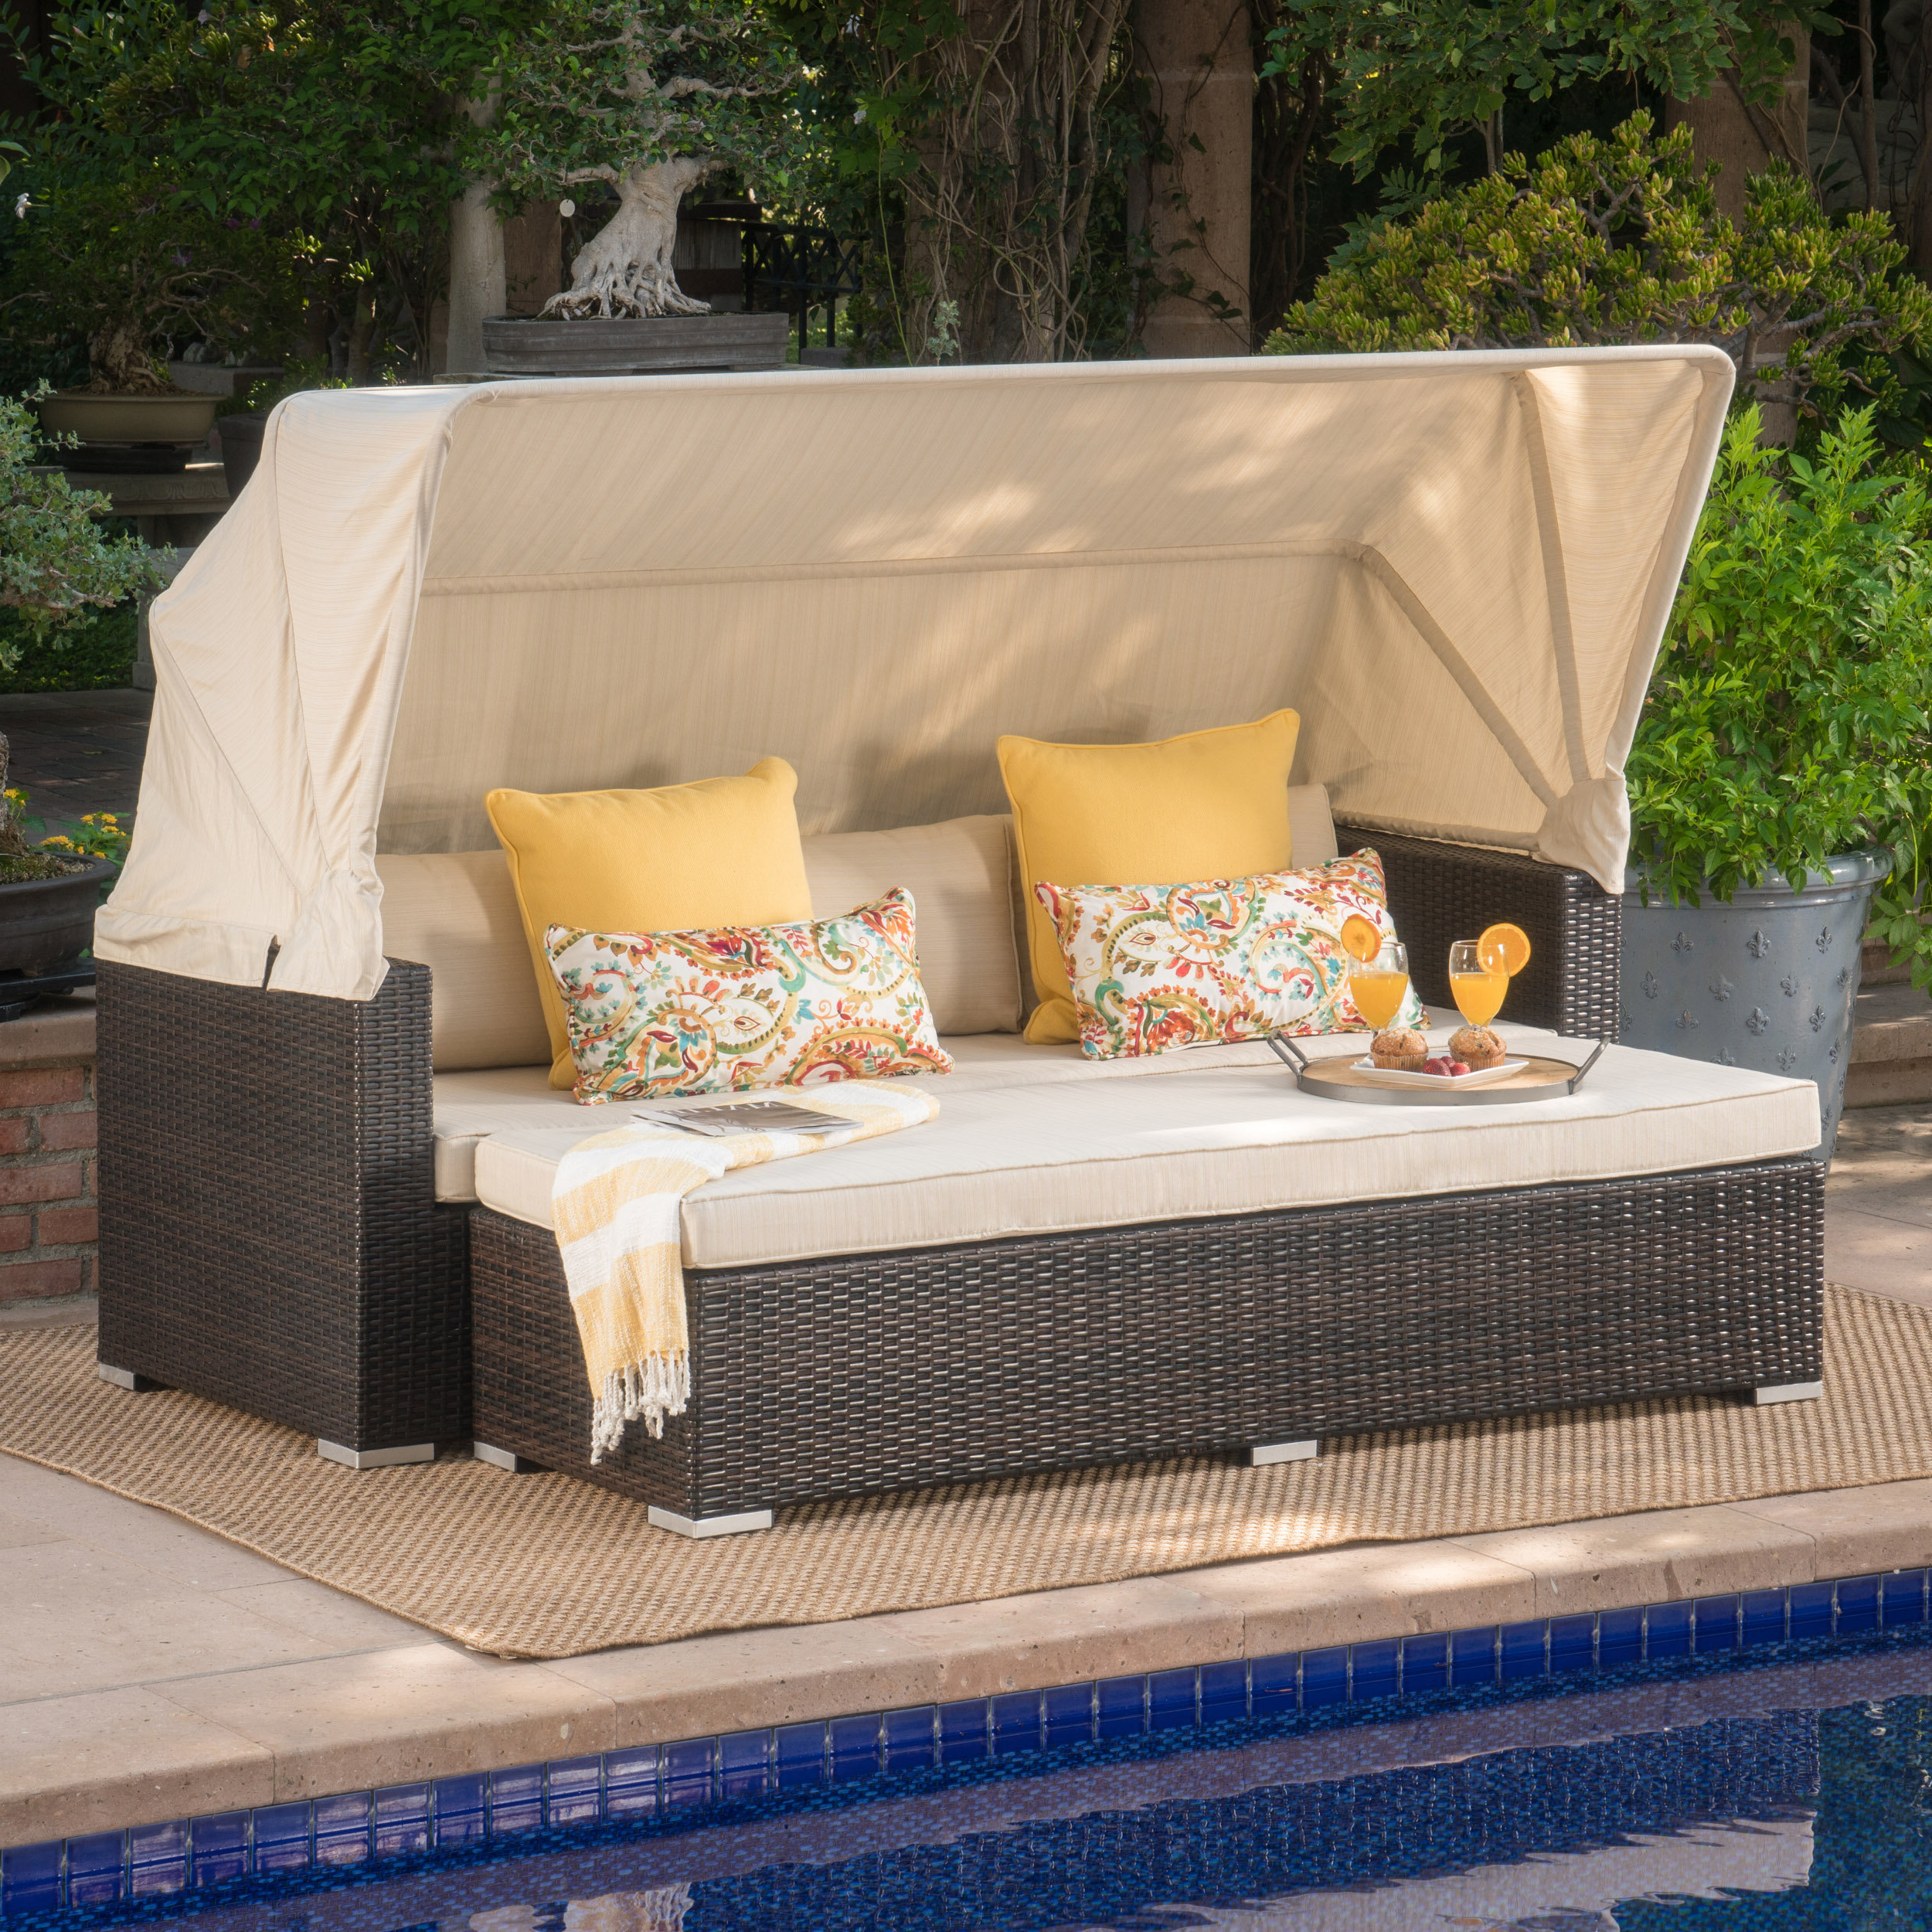 Naperville Patio Daybeds With Cushion For Most Up To Date Lammers Outdoor Wicker Daybed With Cushions (View 14 of 25)